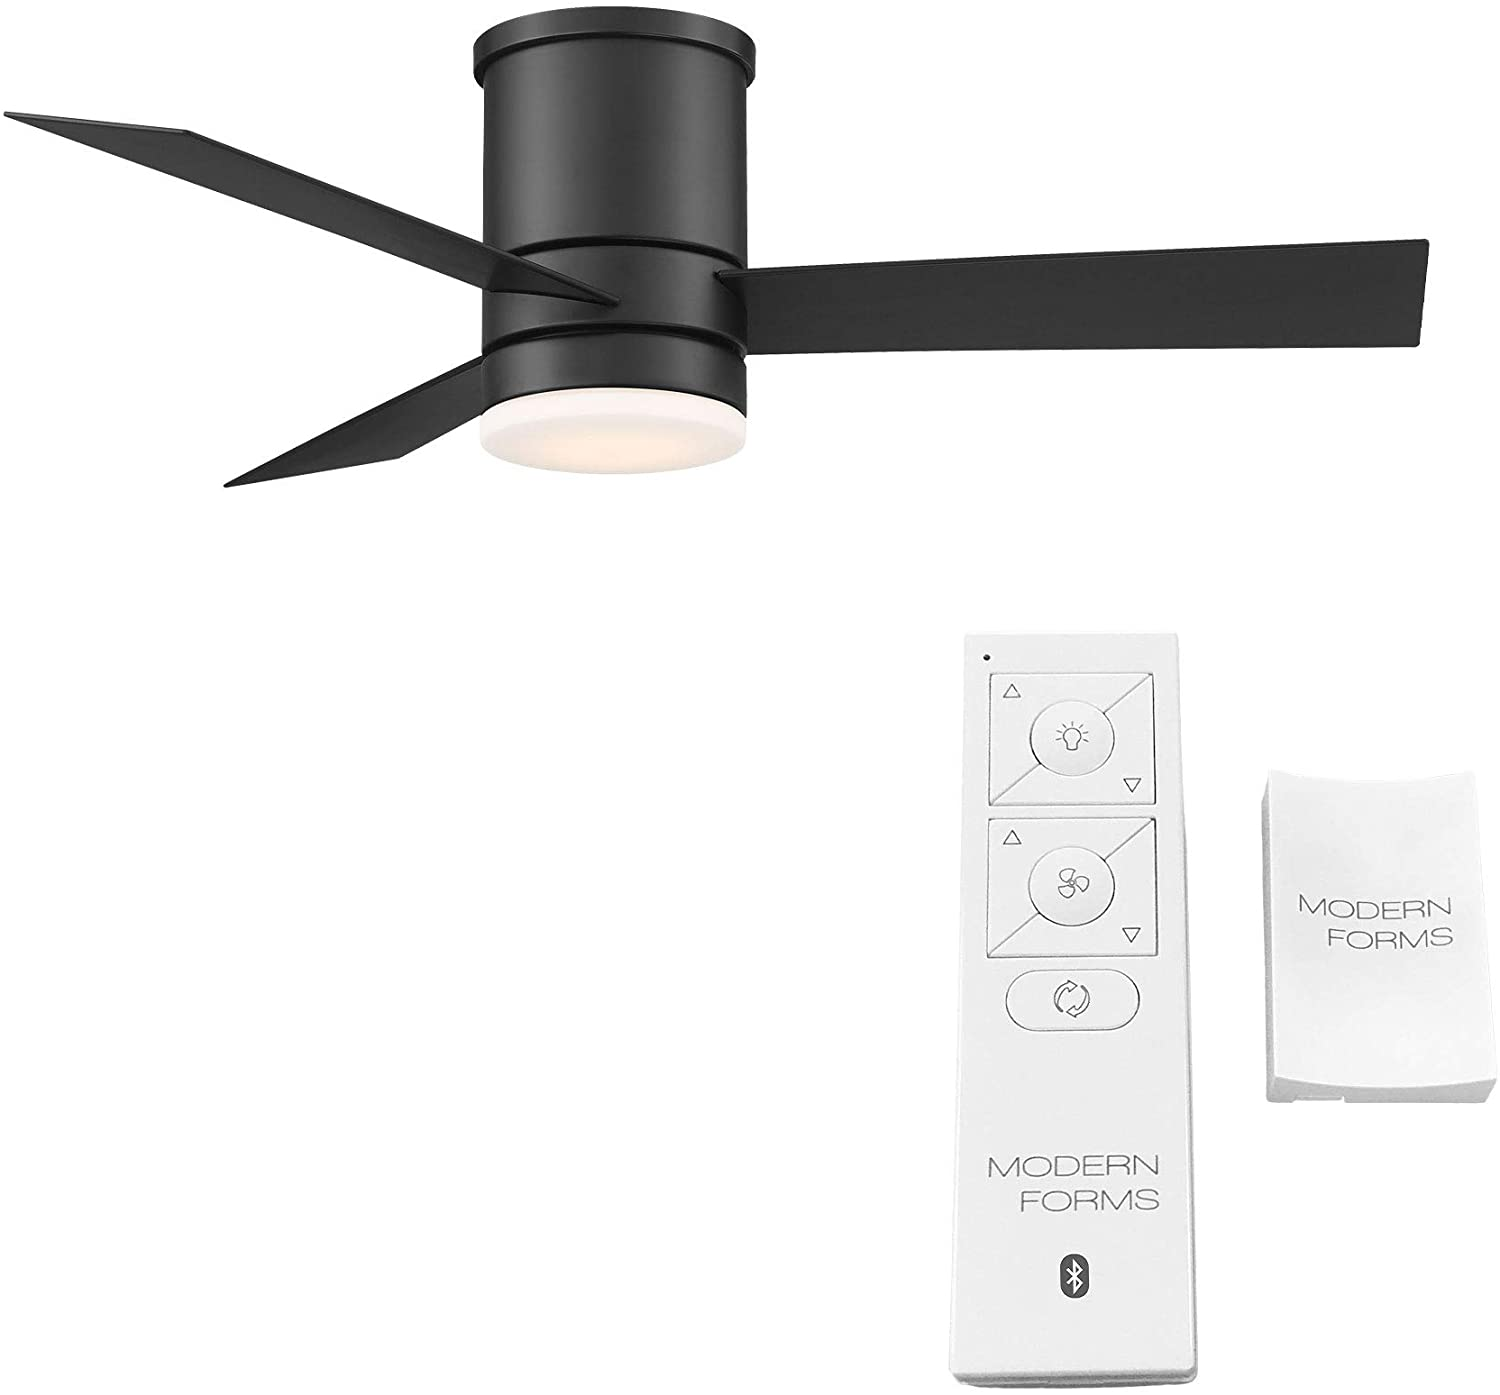 Modern Forms FH-W1803-44L-27-MB Axis Flushmount Smart Home Ceiling Fans, 44in Blade Span, Matte Black